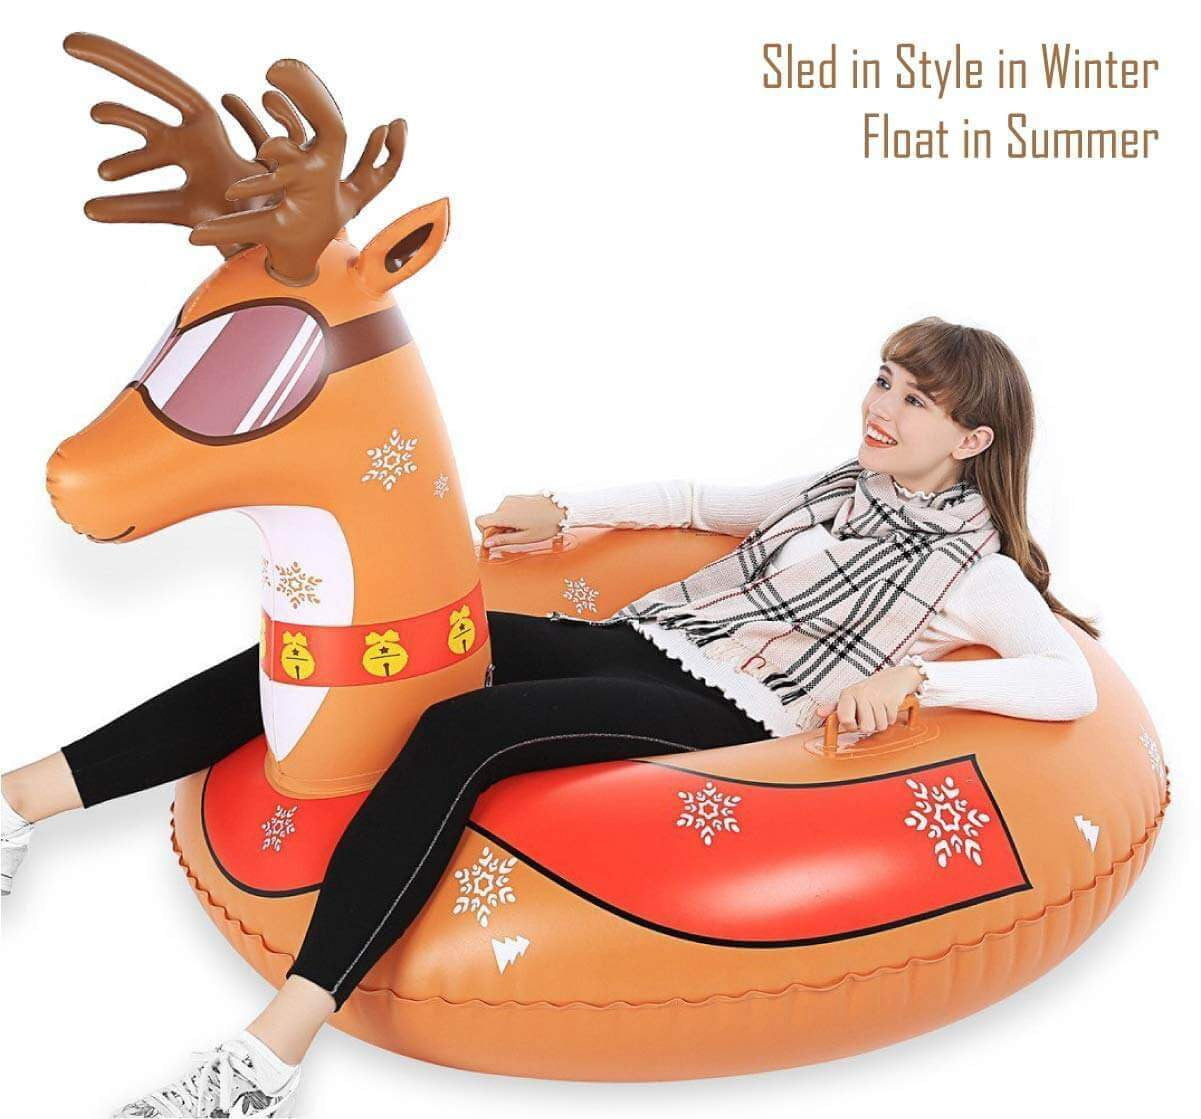 Wholesale Jasonwell 47 Inch Inflatable Snow Sled Snow Tube - Jasonwell